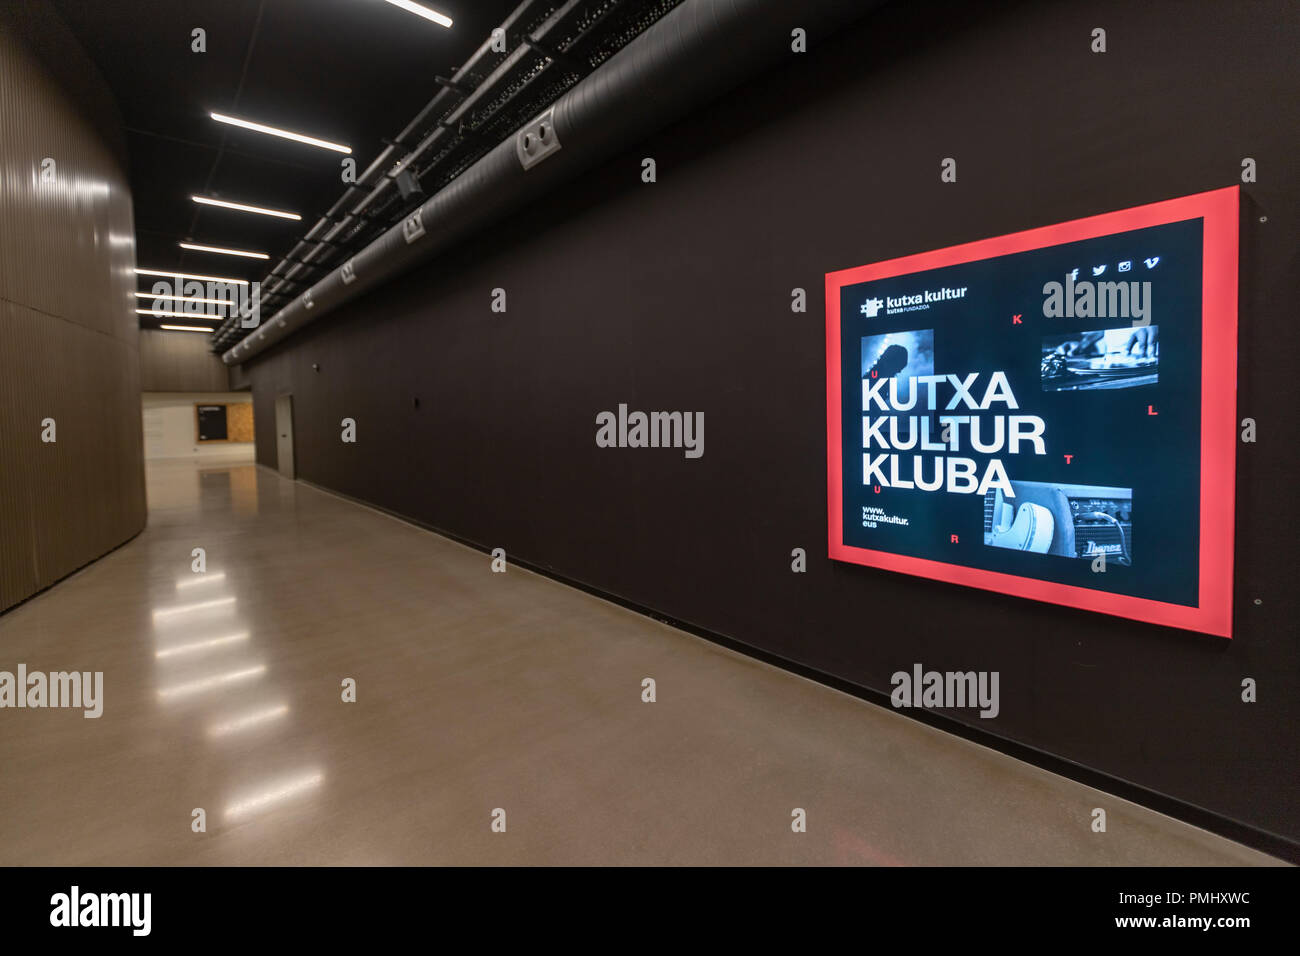 Kutxa Kultur Kluba in Tabakalera, San Sebastián, Basque Country, Spain - Stock Image